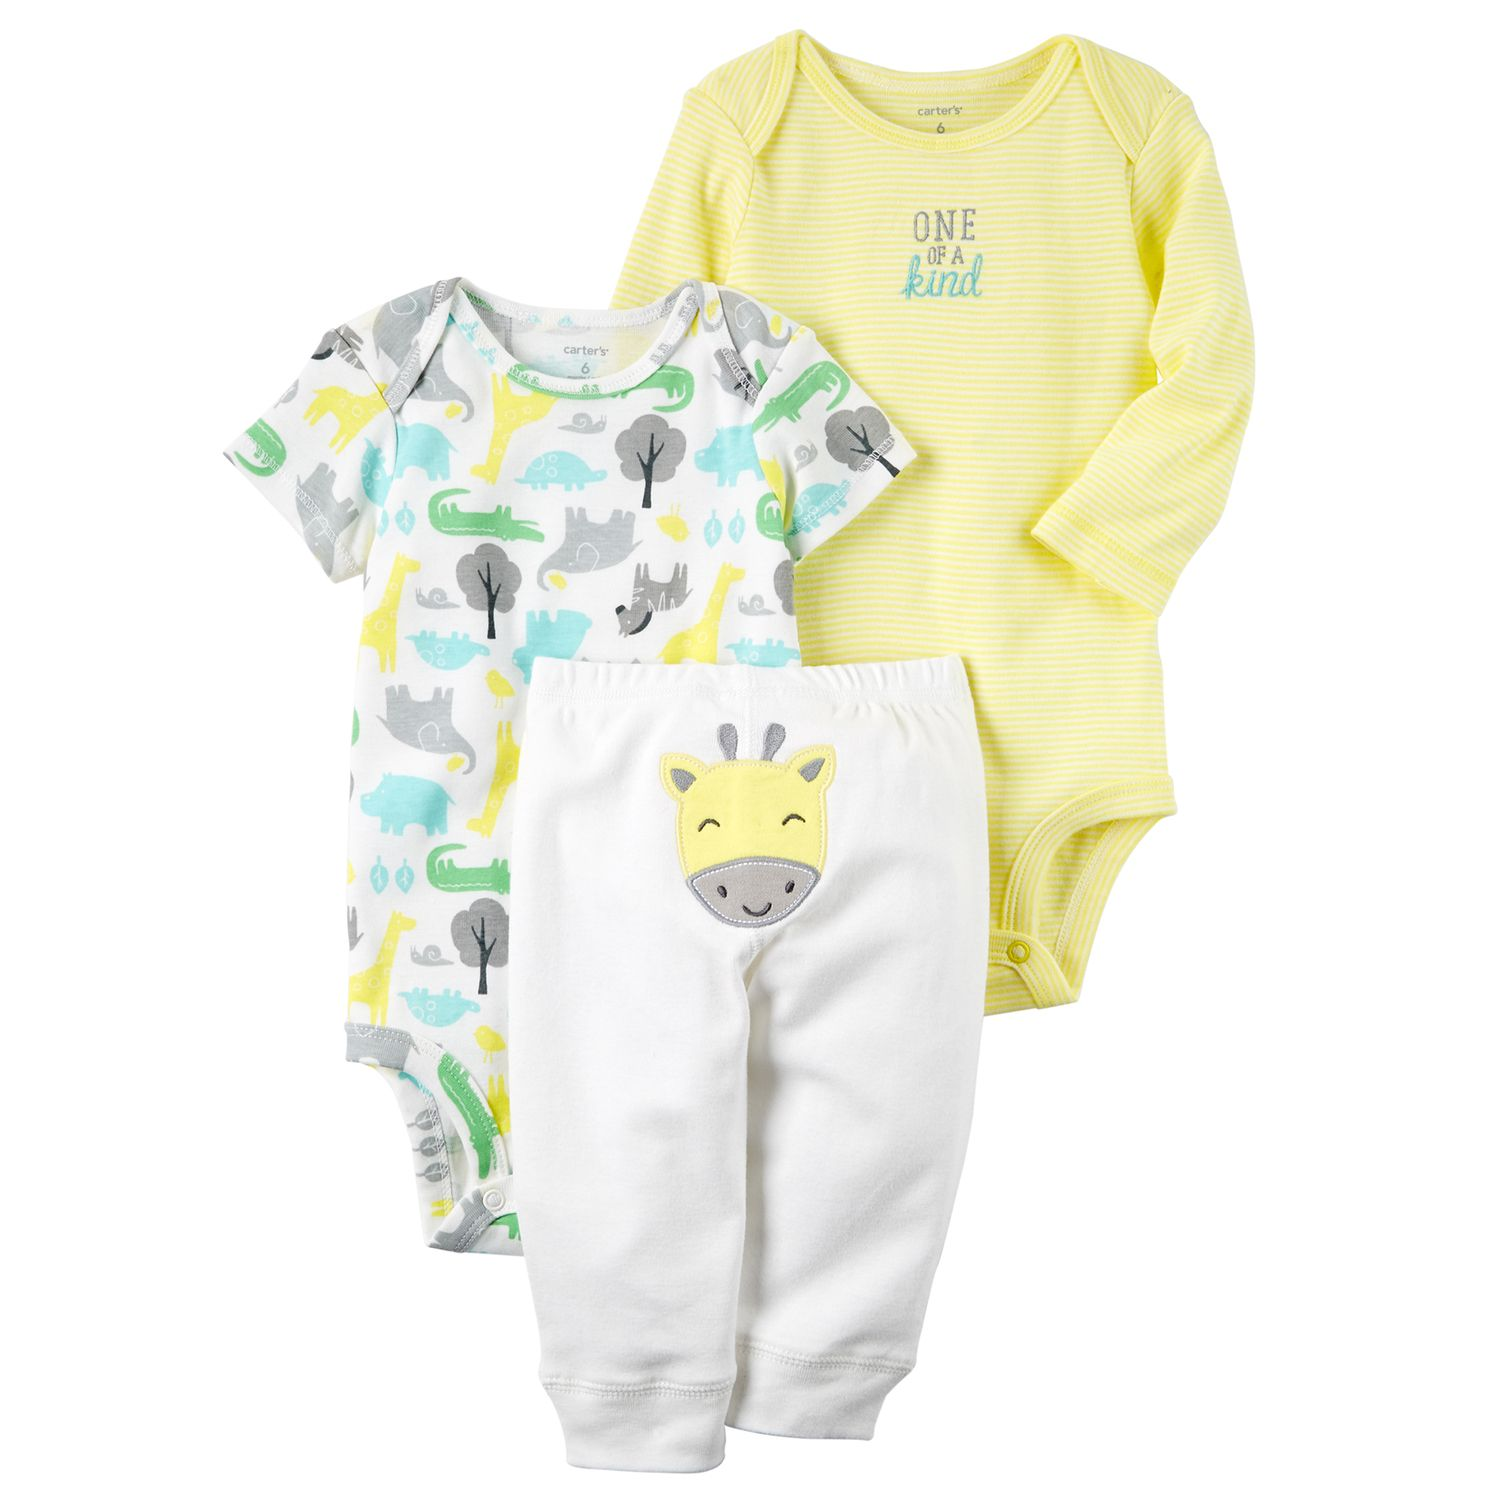 Carter s Baby Clothing Sets